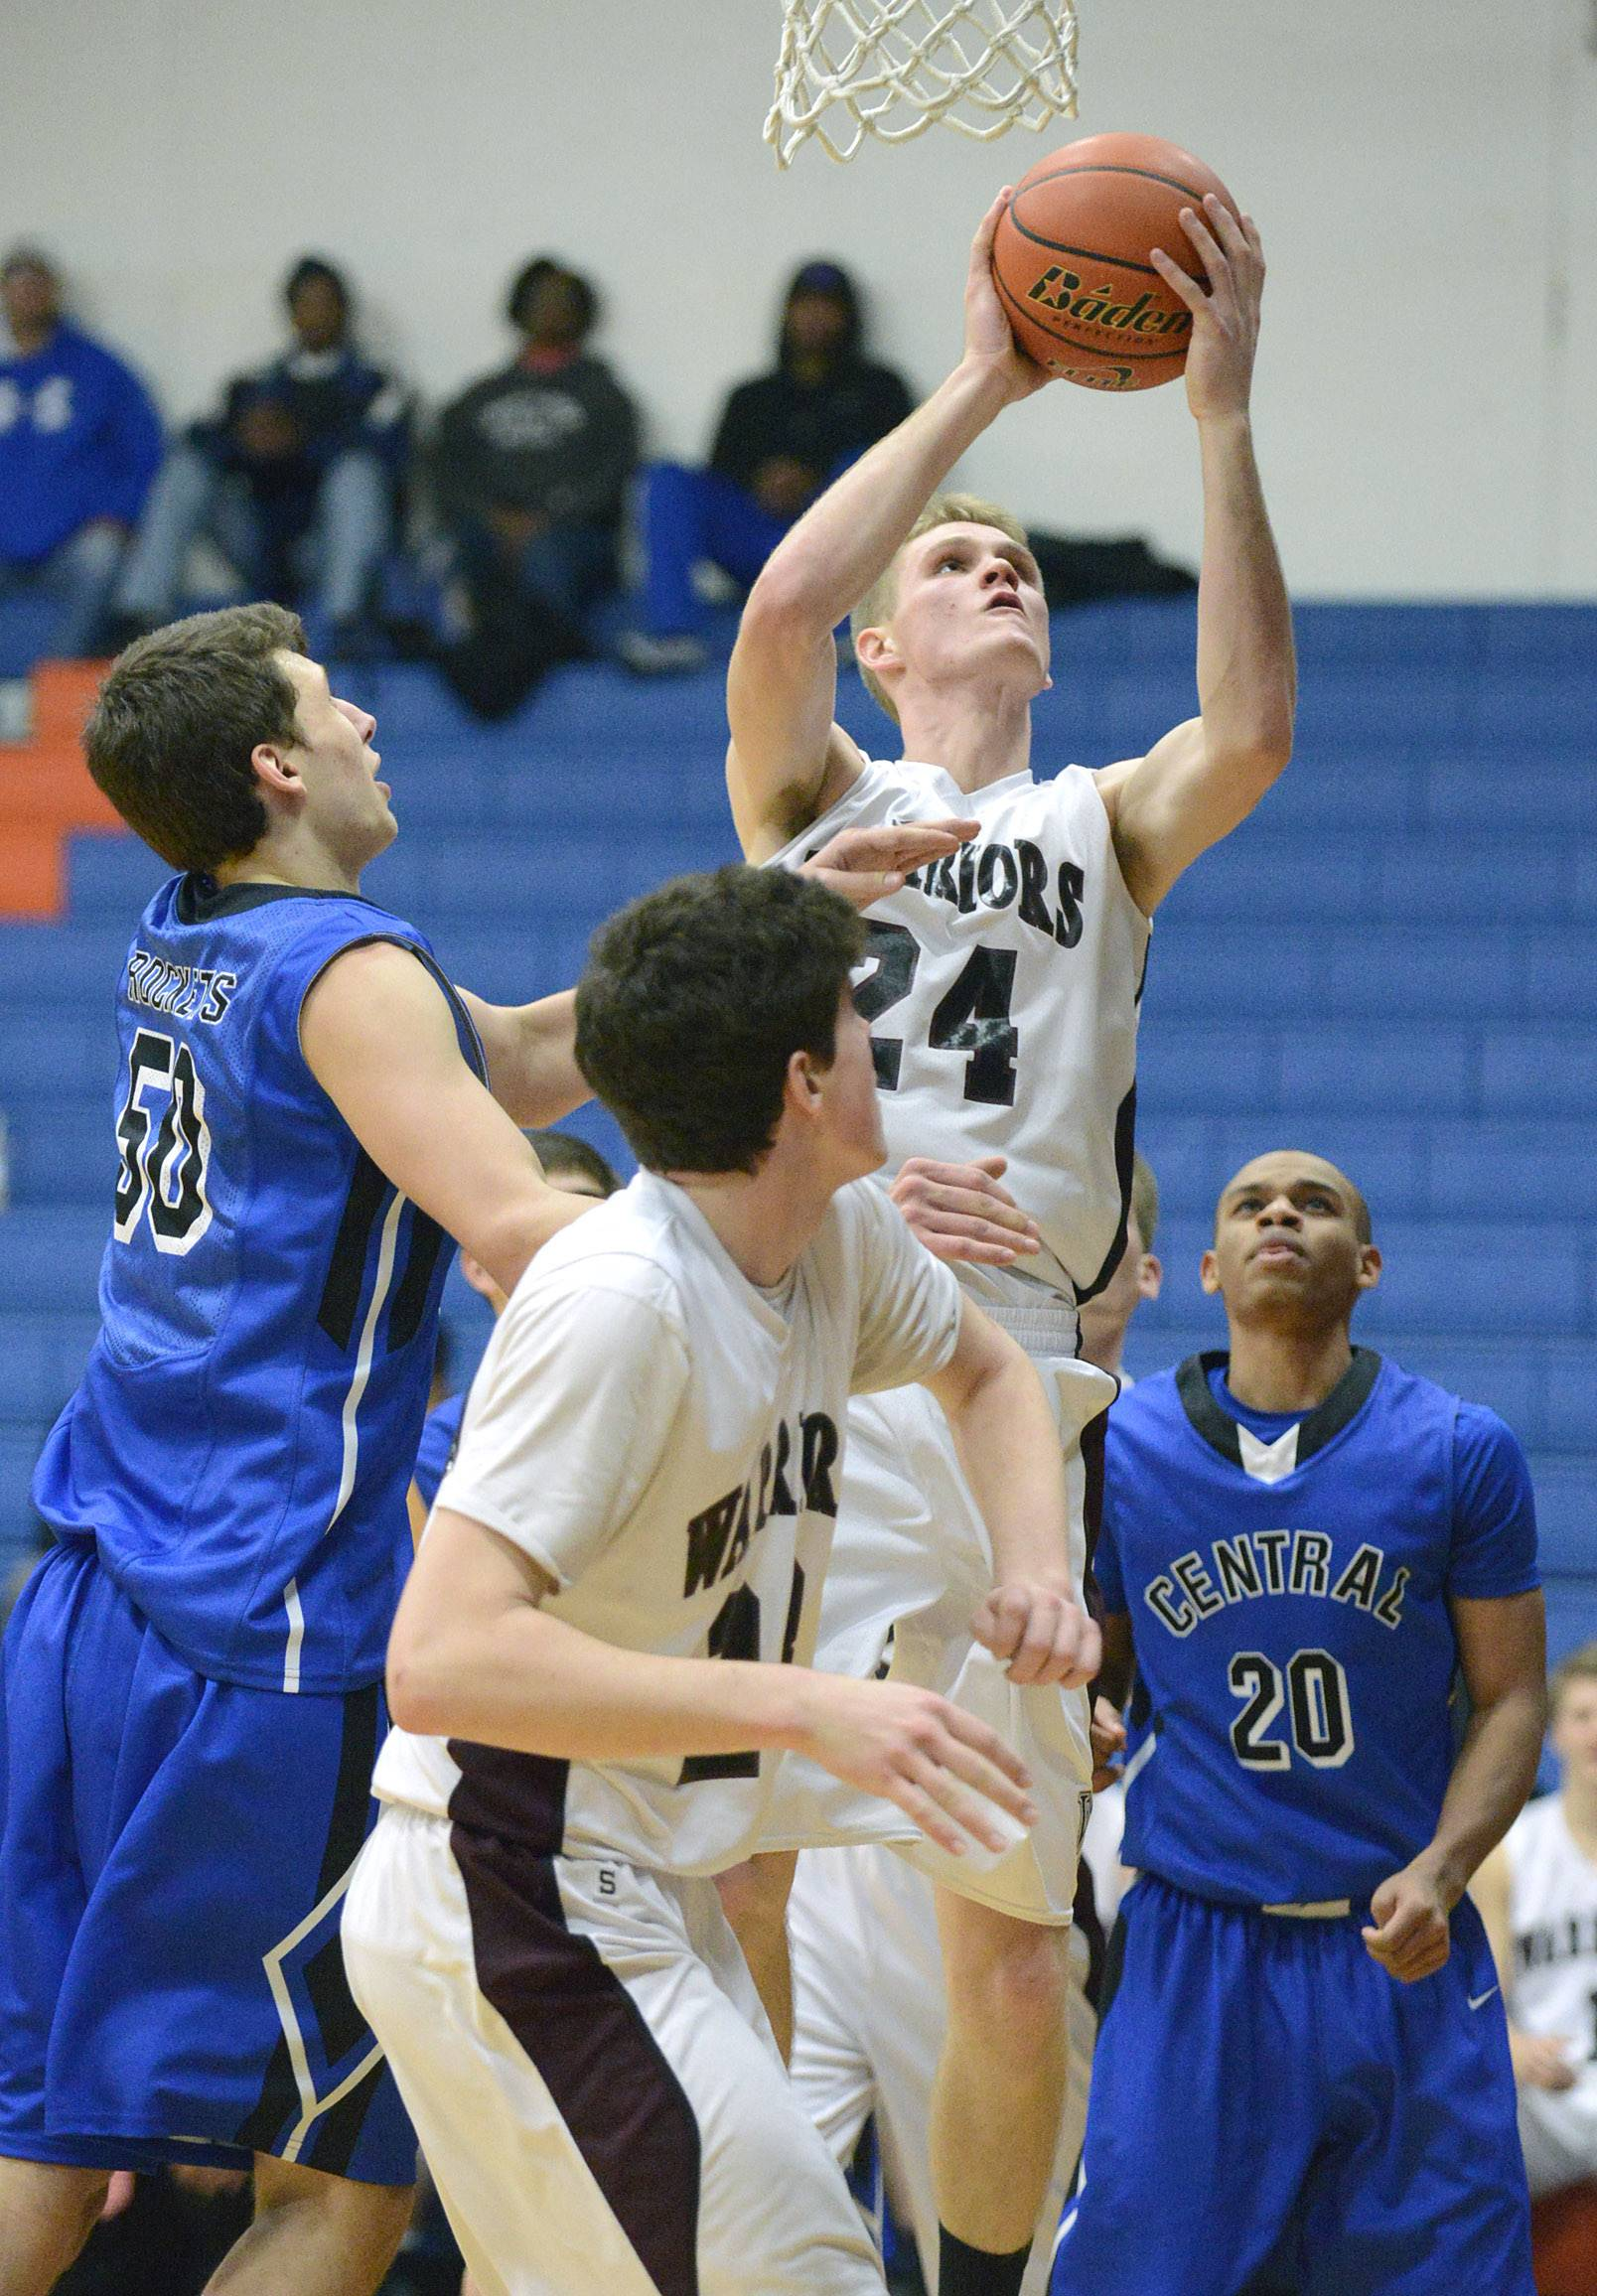 Wheaton Academy's Gordon Behr shoots past Burlington Central's Duncan Ozburn, left, in the fourth quarter of the Class 3A regional at Genoa-Kingston High School in Genoa on Wednesday.